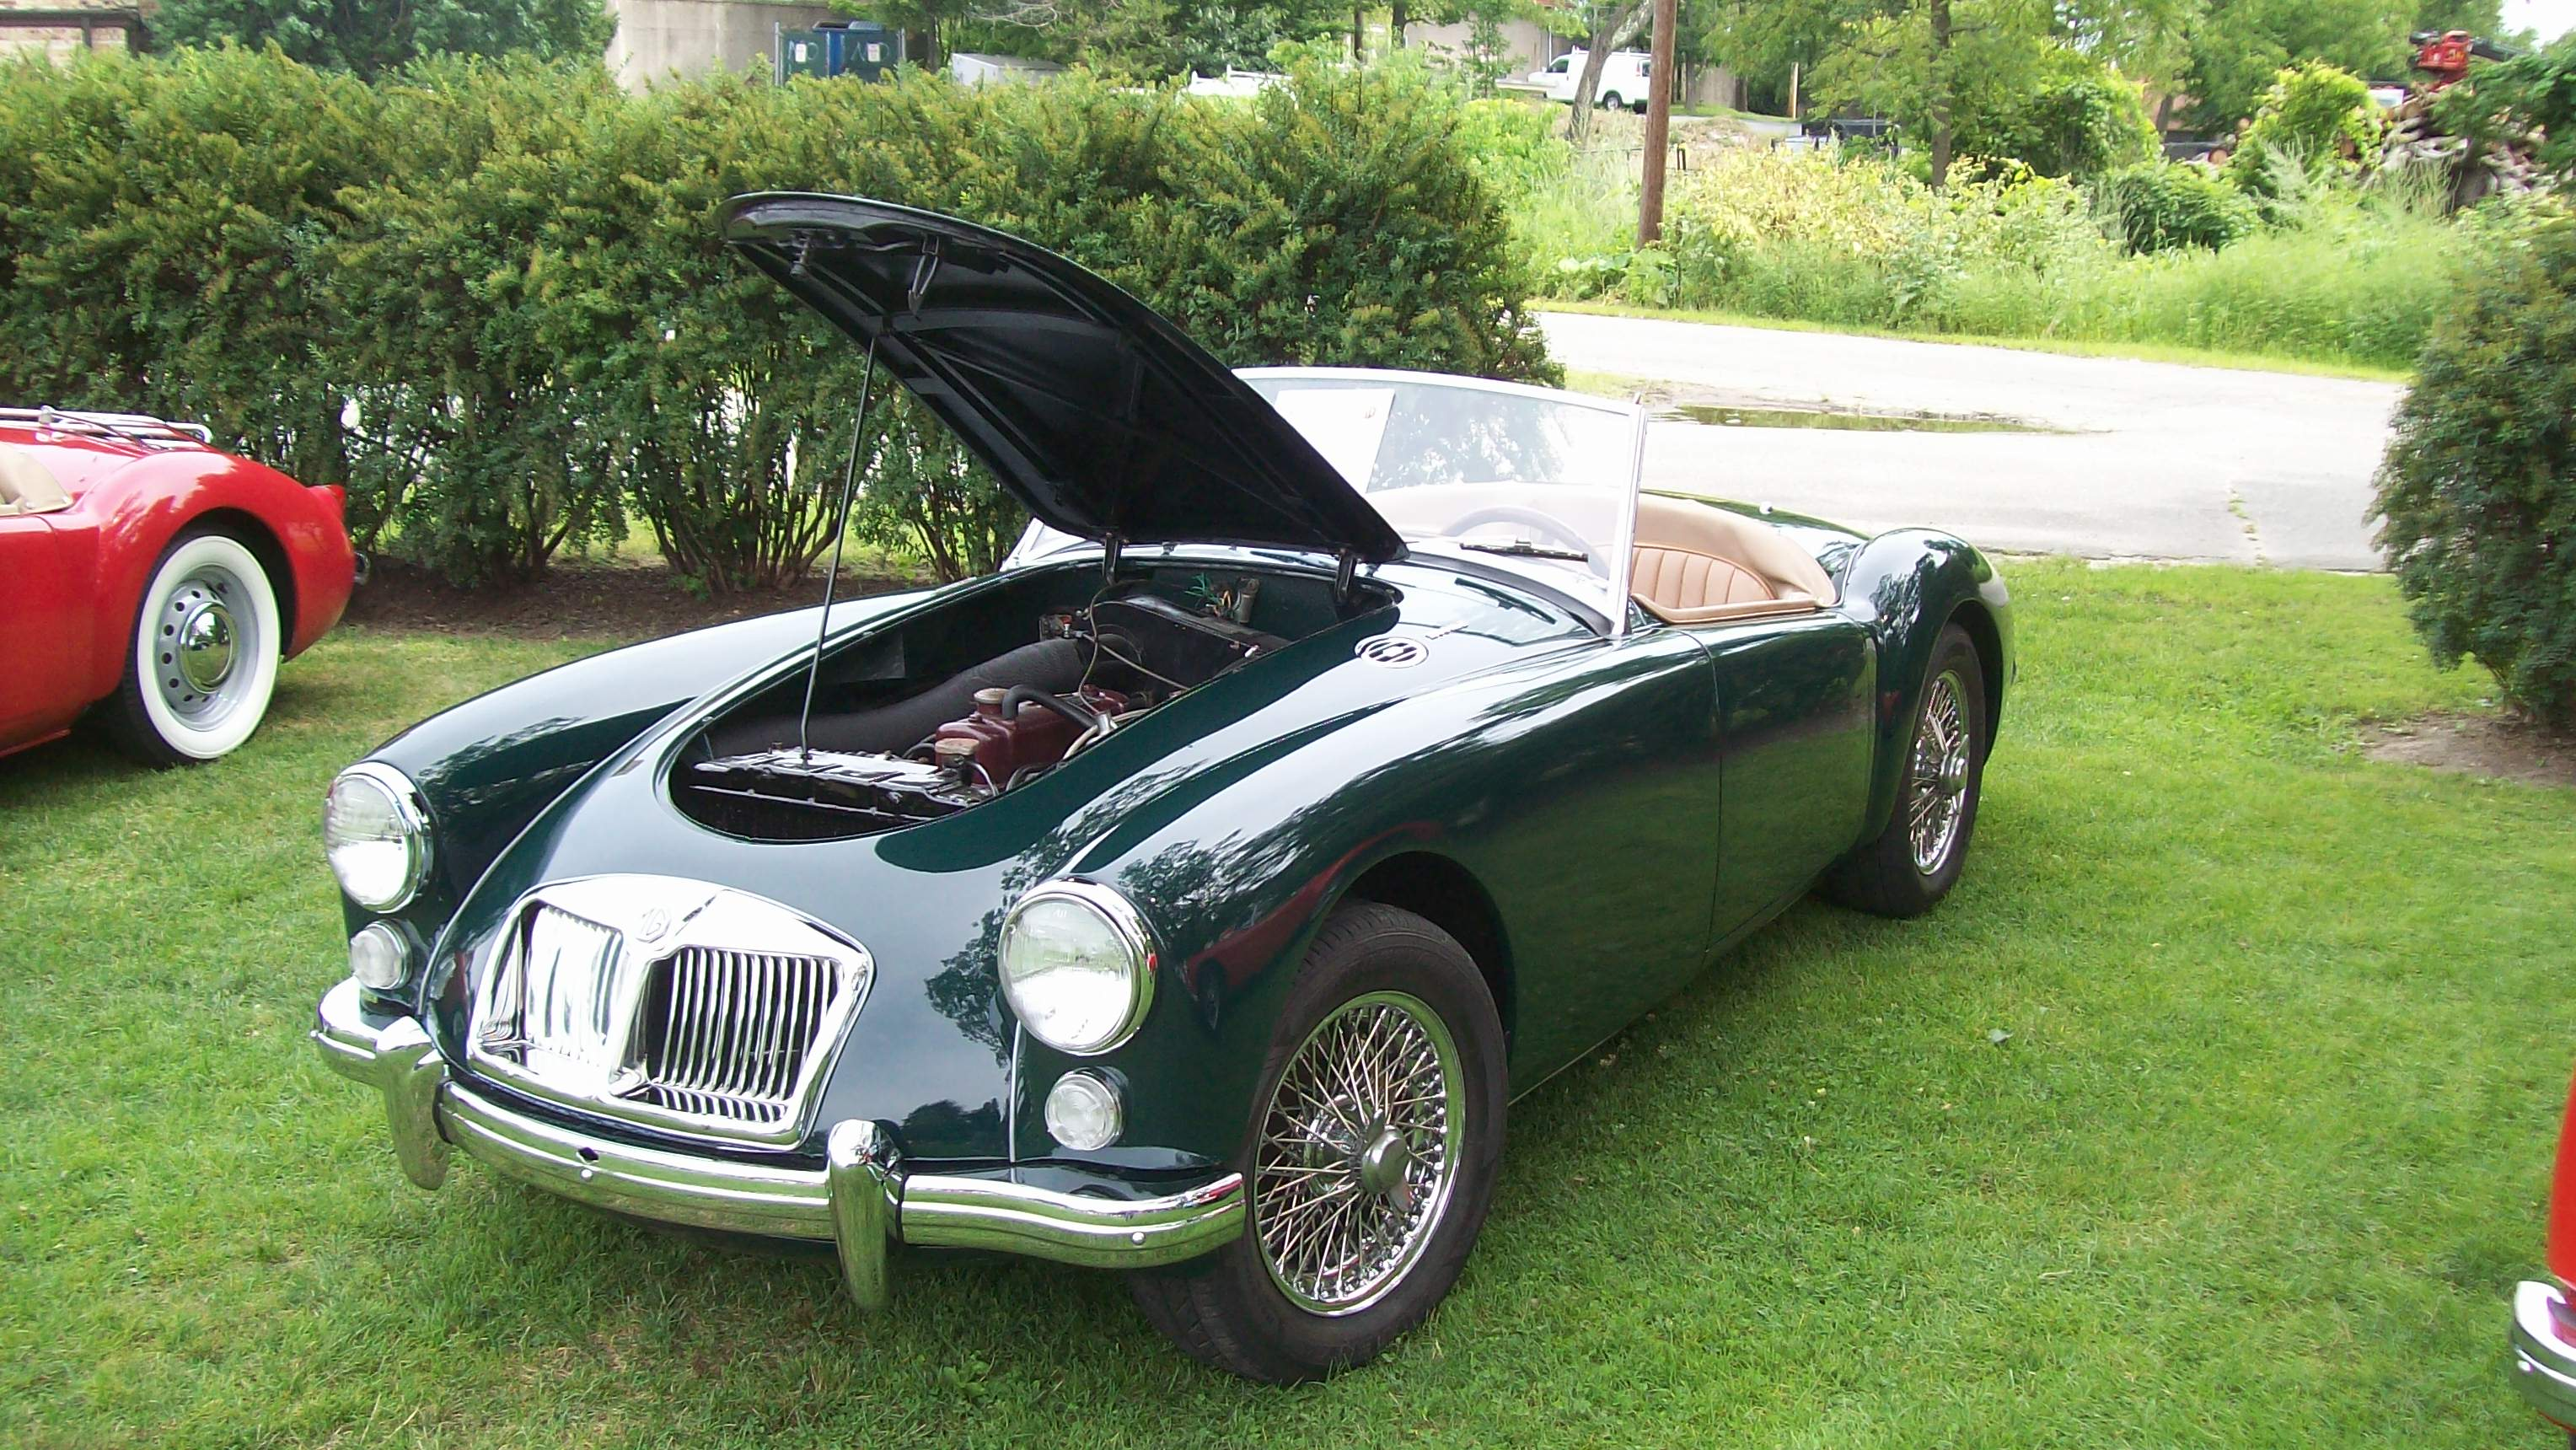 The Stylish Mga Is Very Impressive